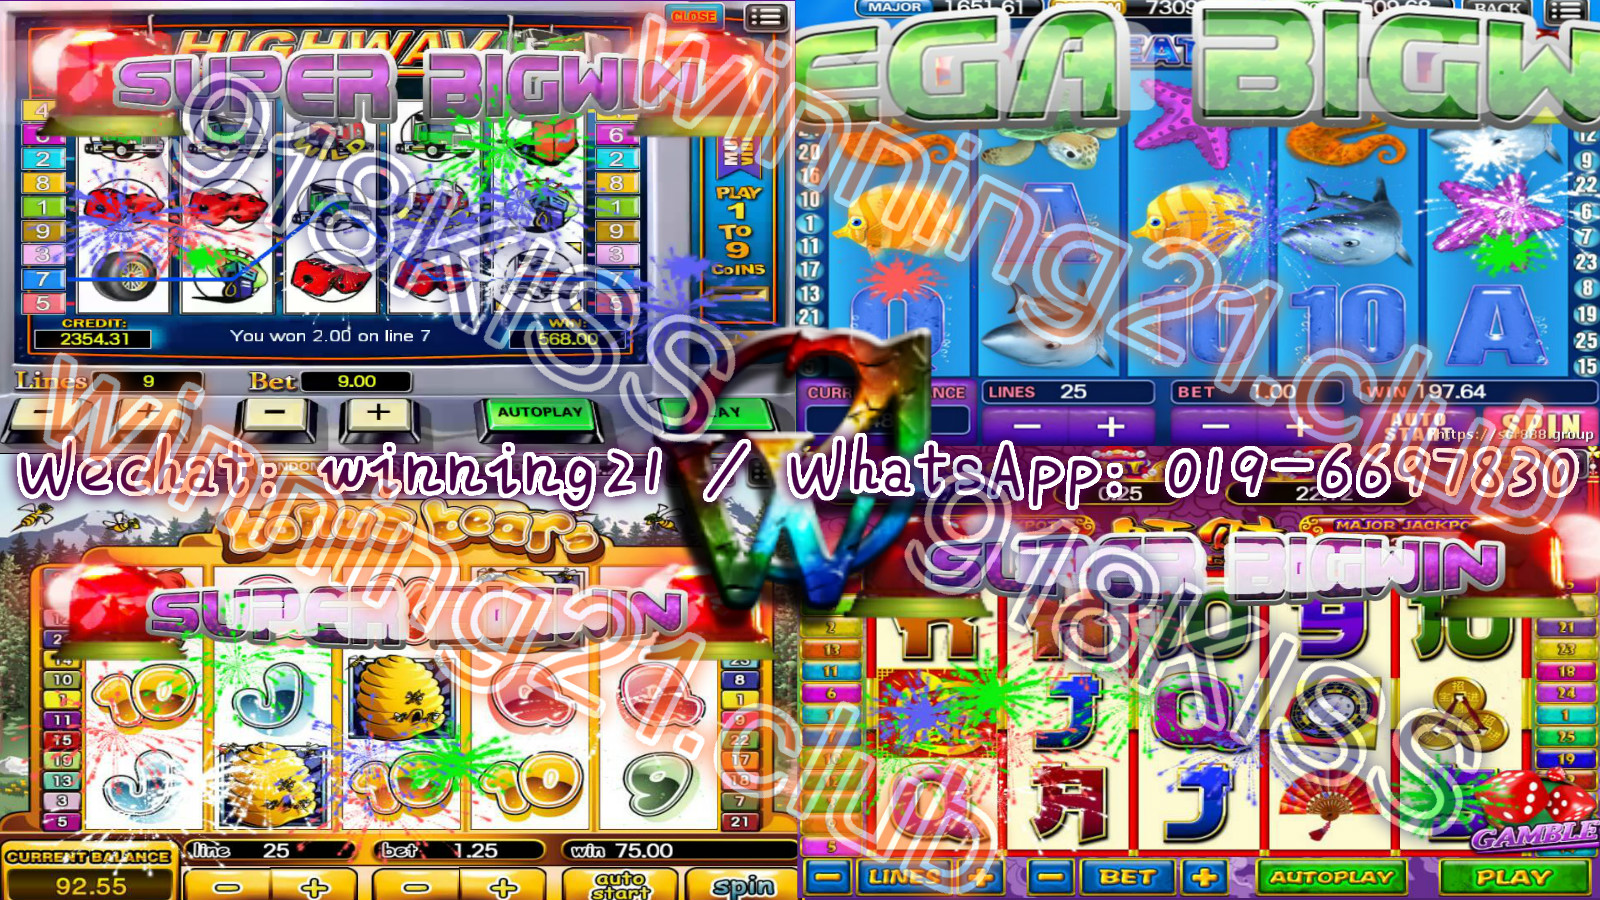 918kiss Malaysia Singapore Real Money Online Gaming Register